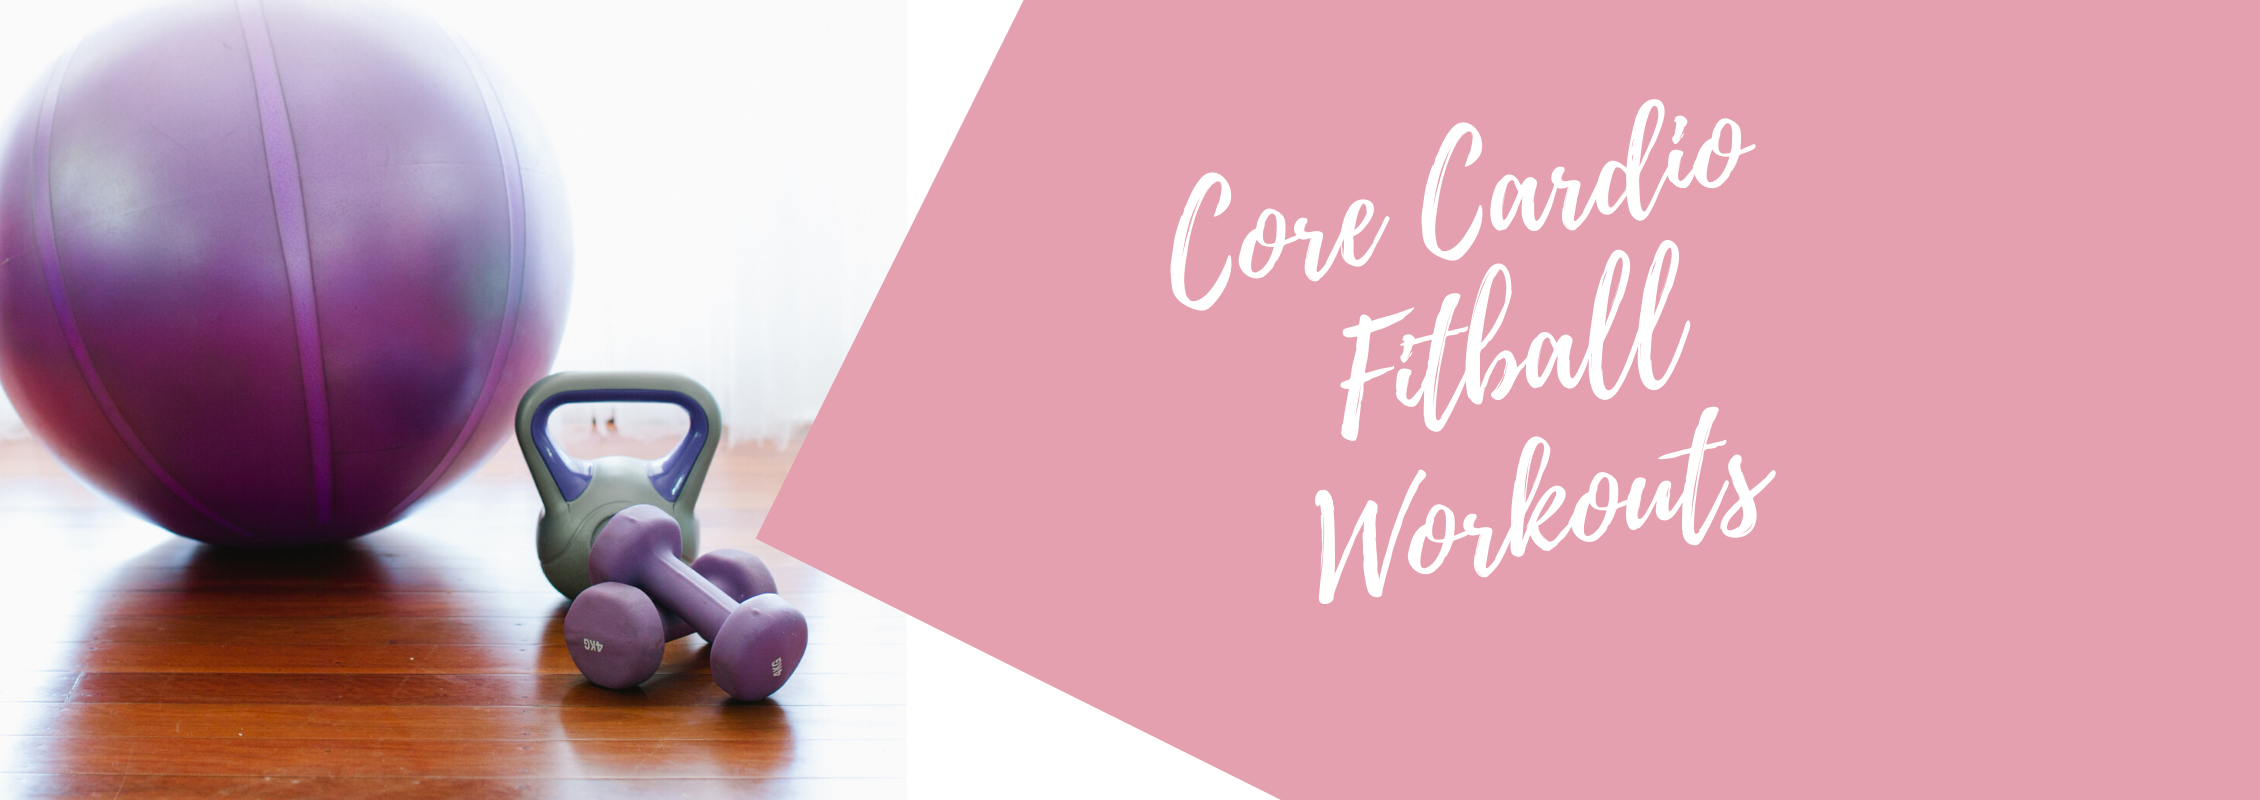 core+cardio_fitball_workouts